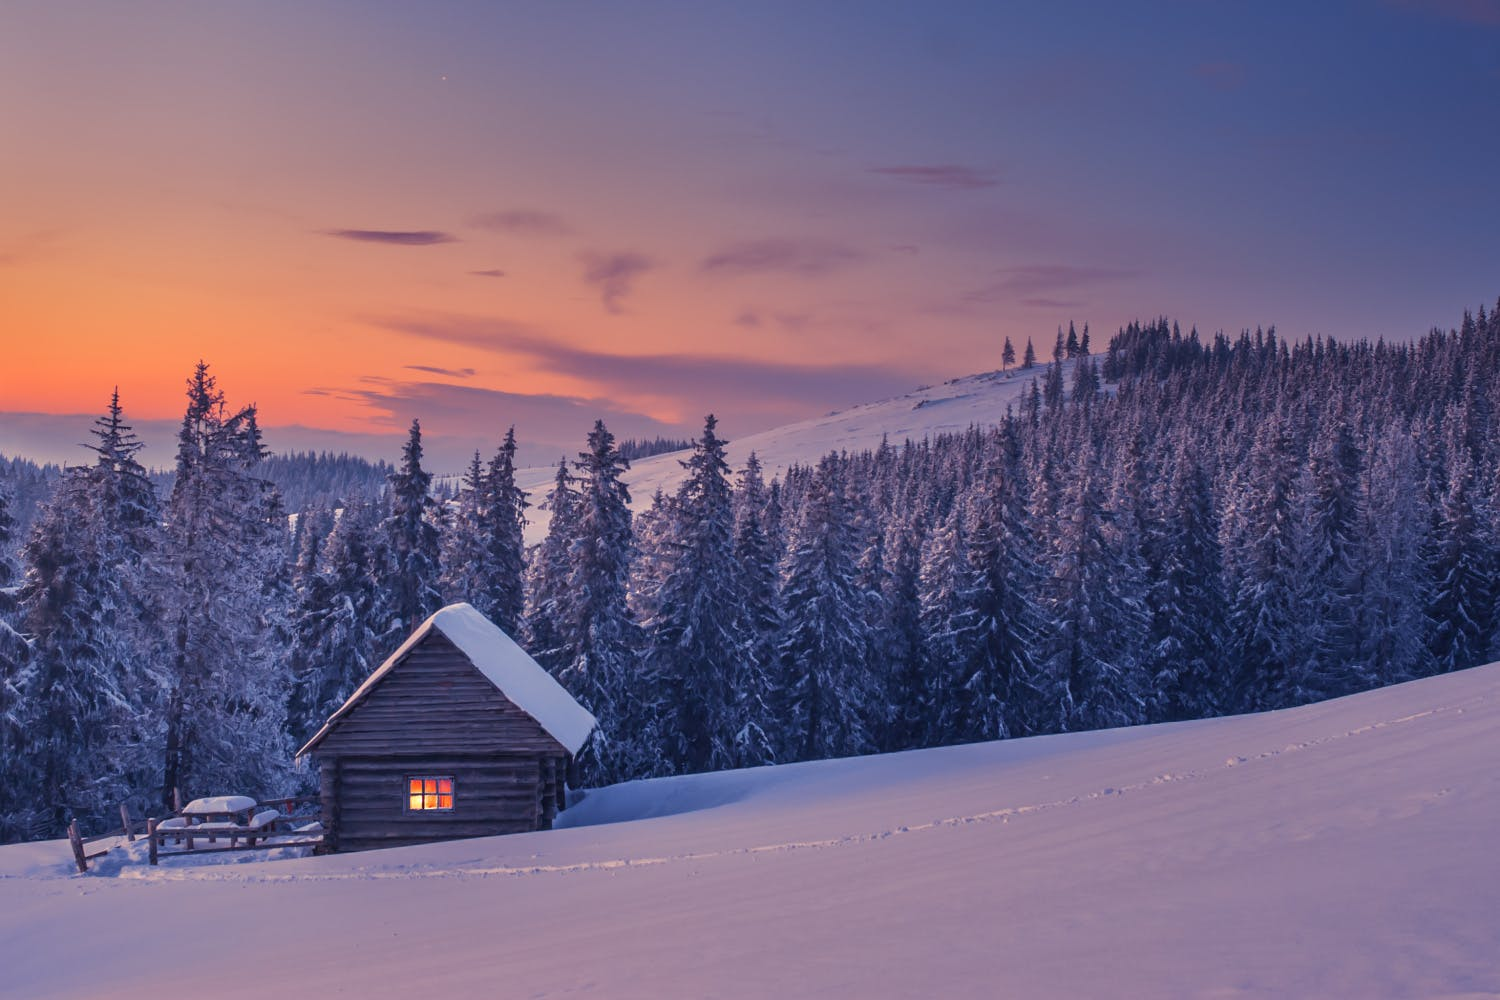 a cabin in the woods surrounded by snow on a winter evening